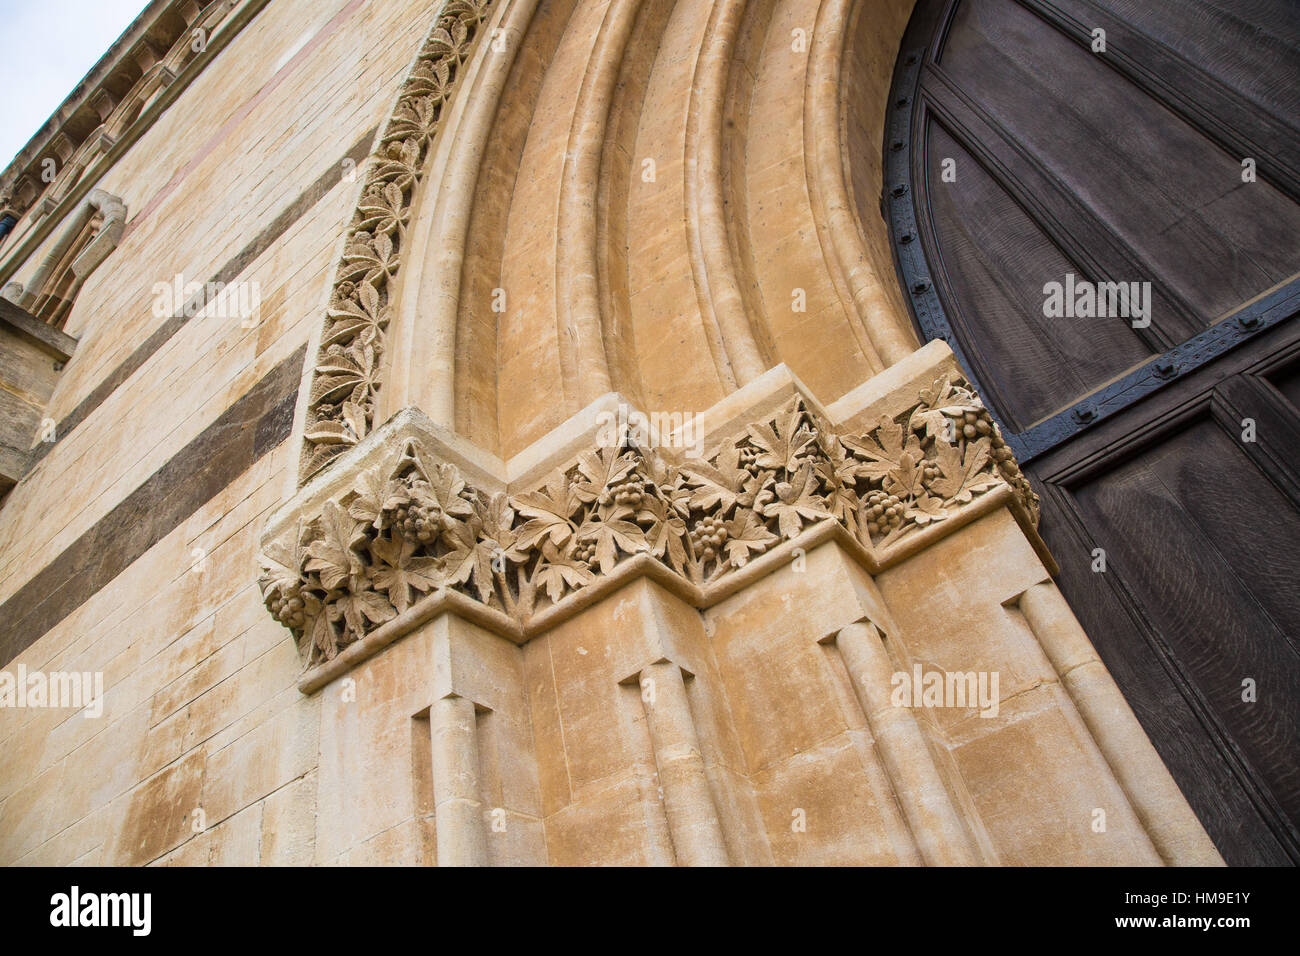 Jesus College Oxford showing details of the architechture Stock Photo